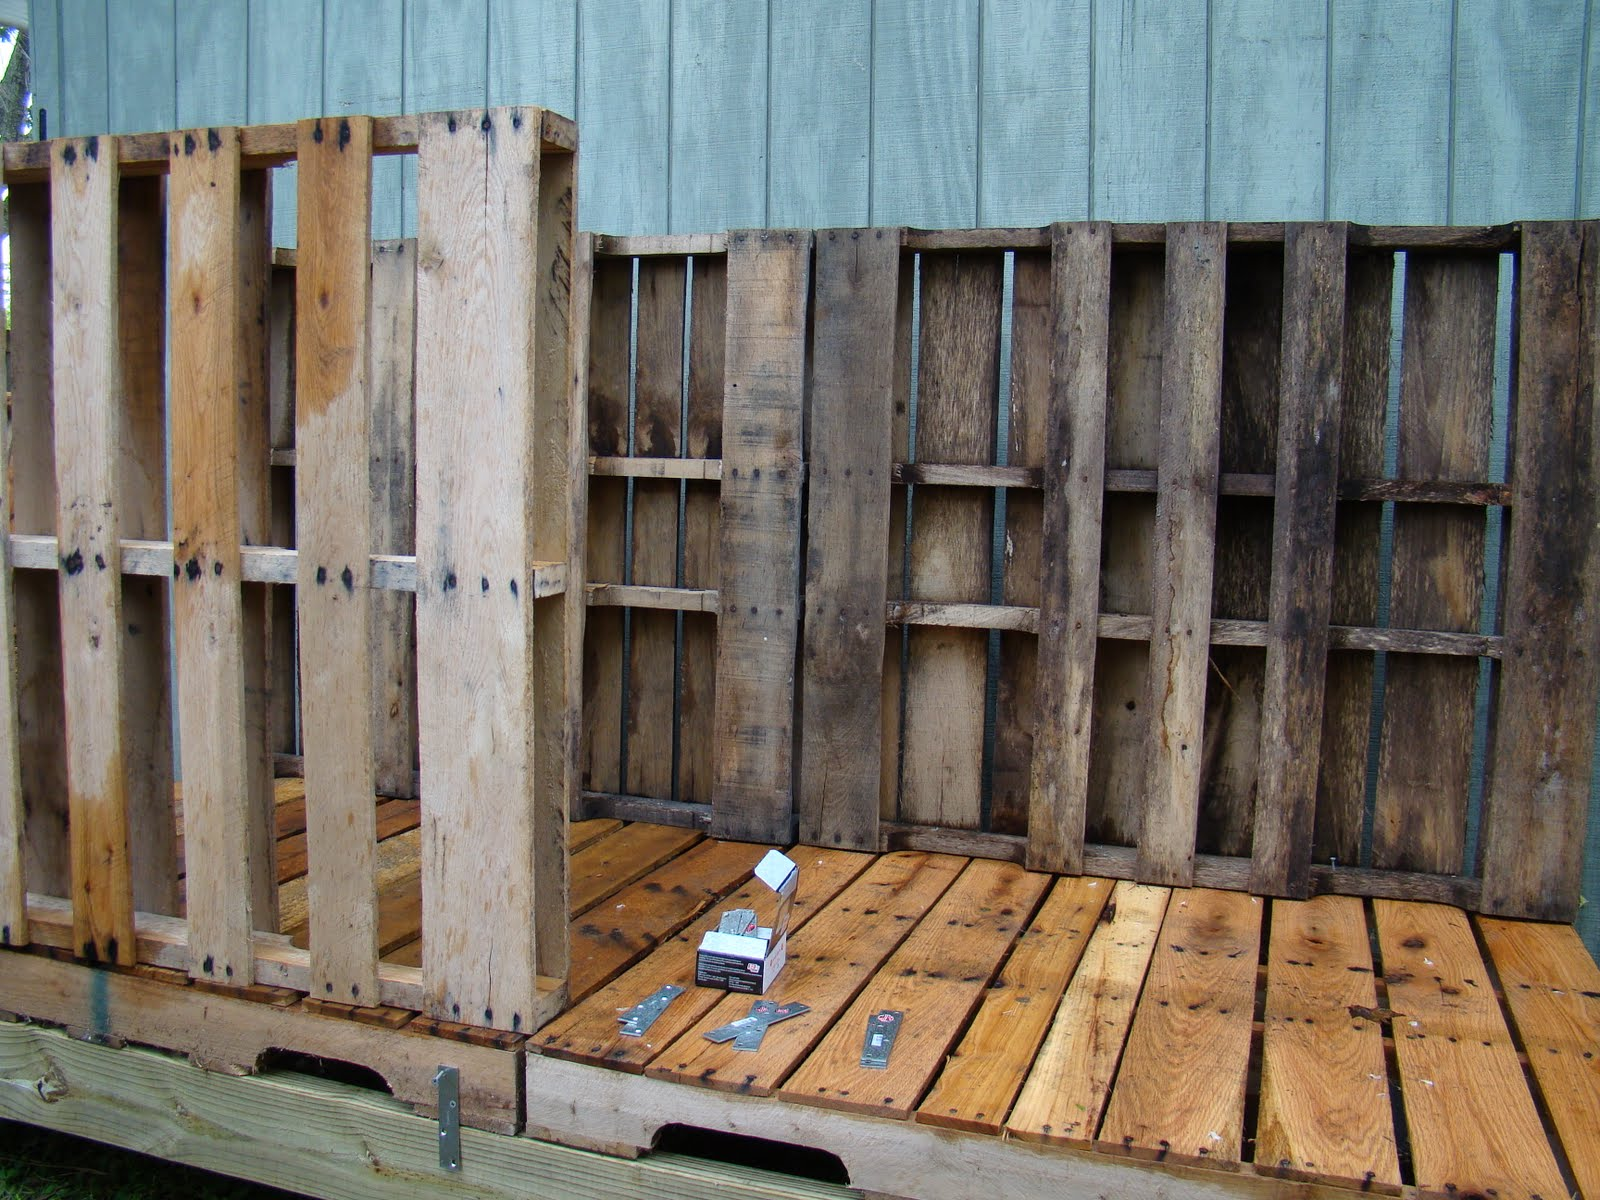 Cool coops pallet coop community chickens for How to build a chicken coop from wooden pallets